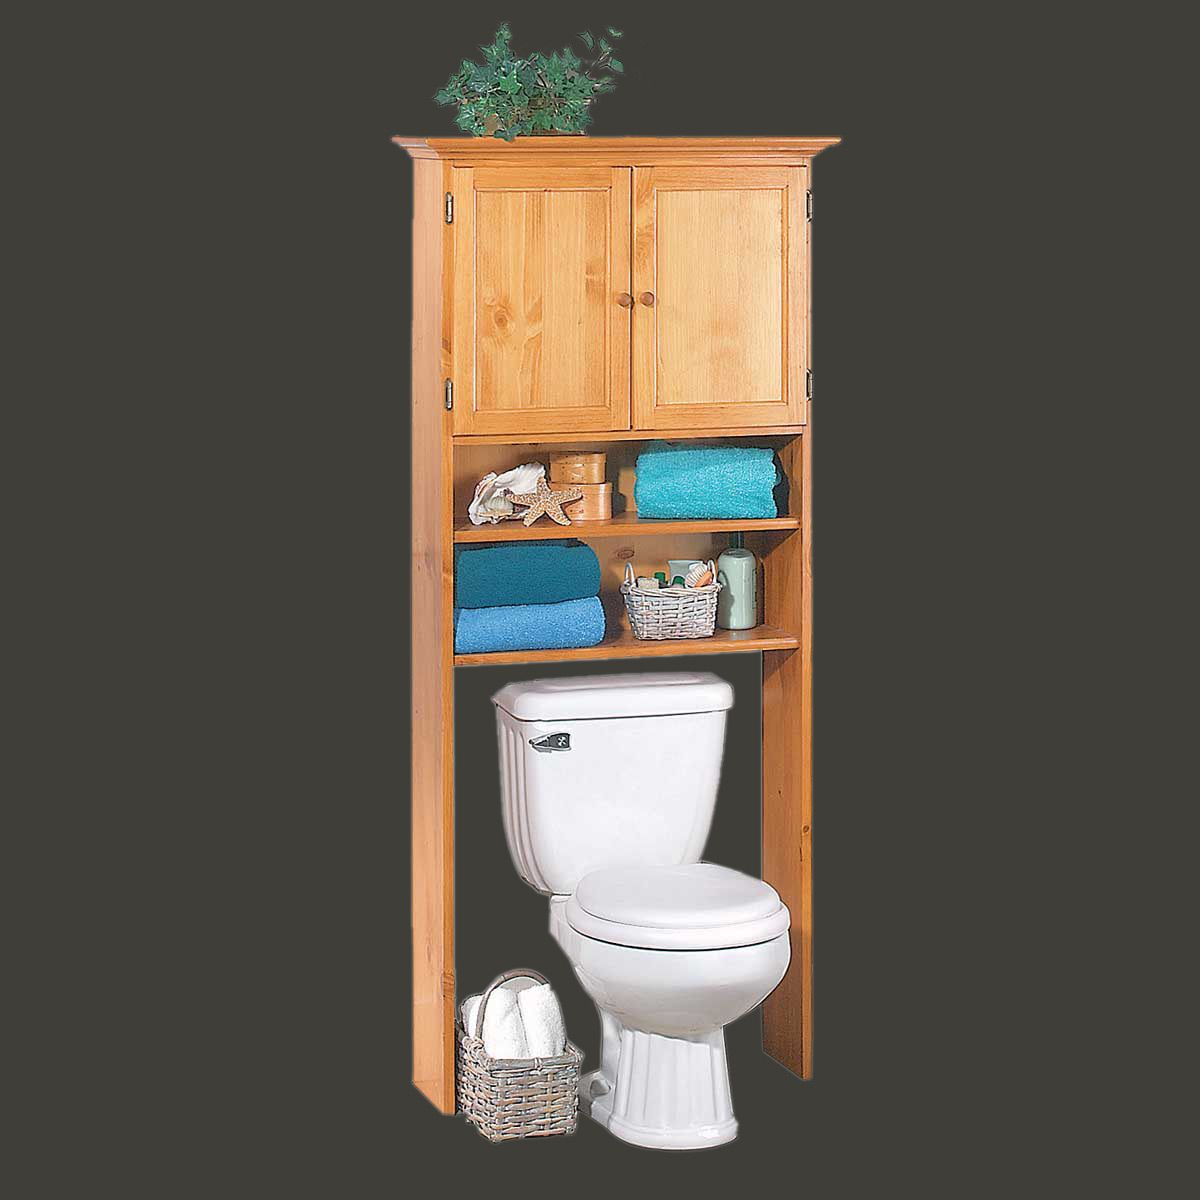 Home Bathroom, Bathroom shelves, Bathroom shelves over